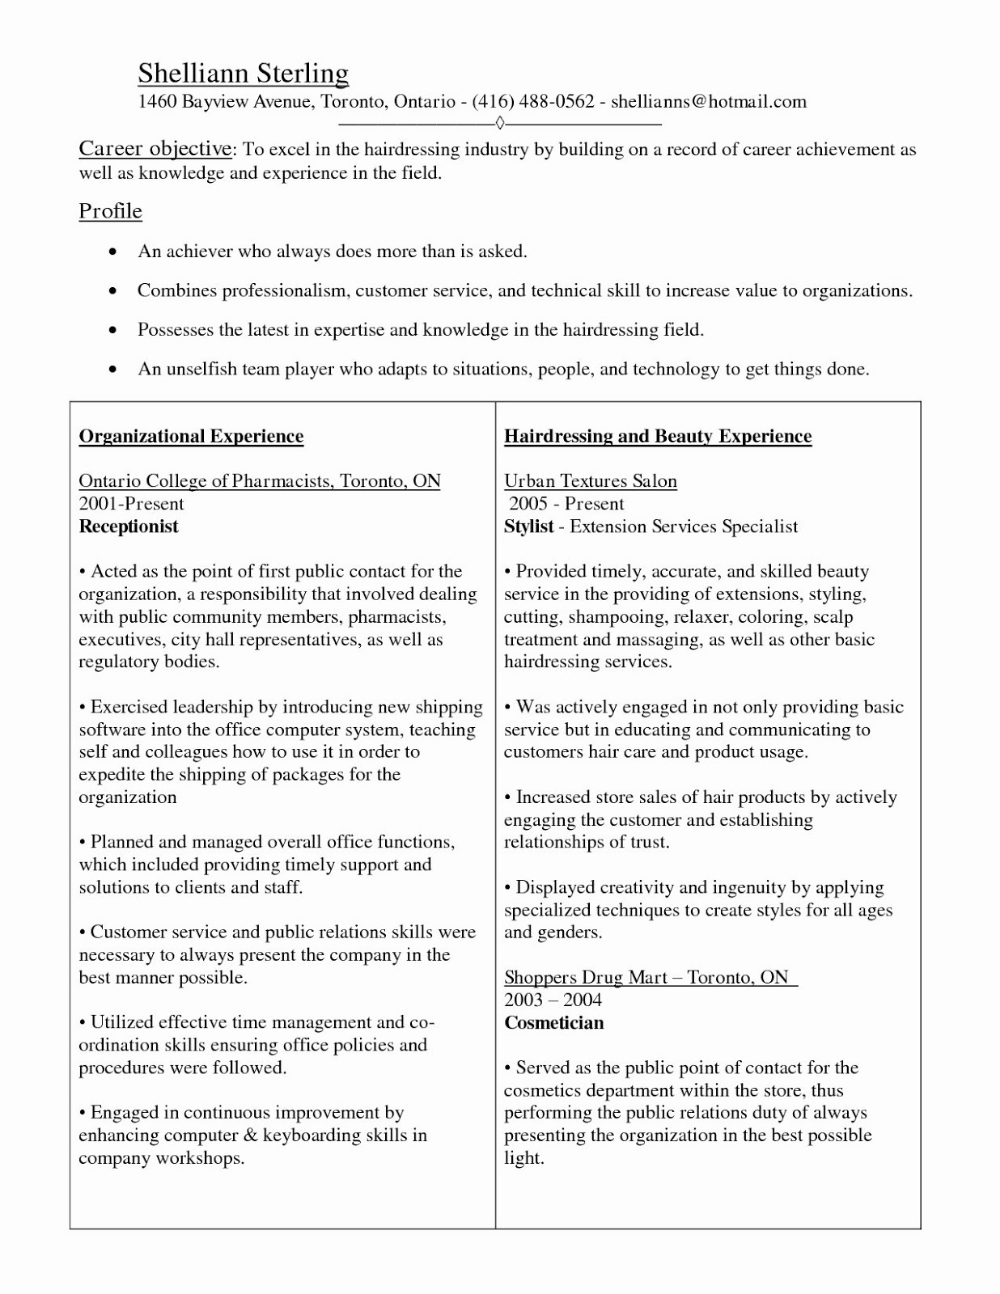 Esthetician Resume Example 2019 Cover Letters 2020 → CLICK